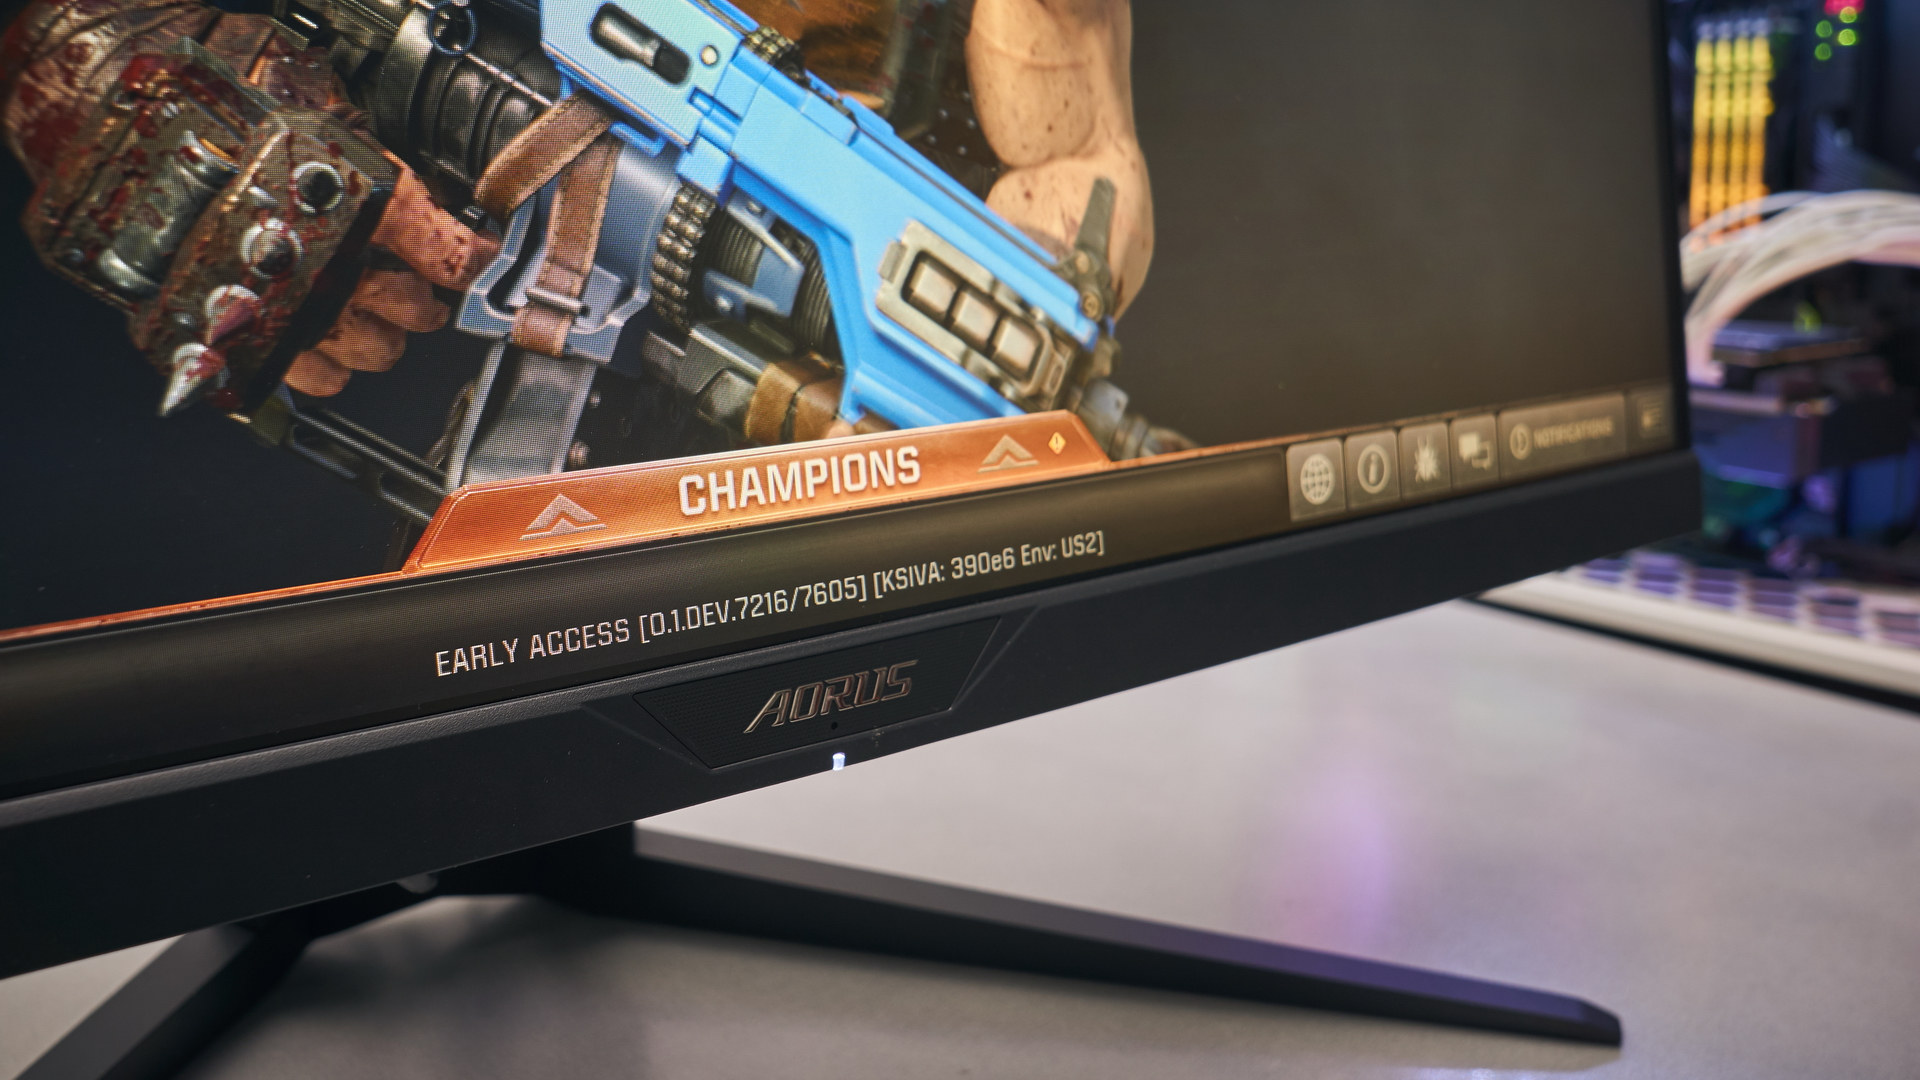 Aorus KD25F 240 Hz gaming monitor review | WASD